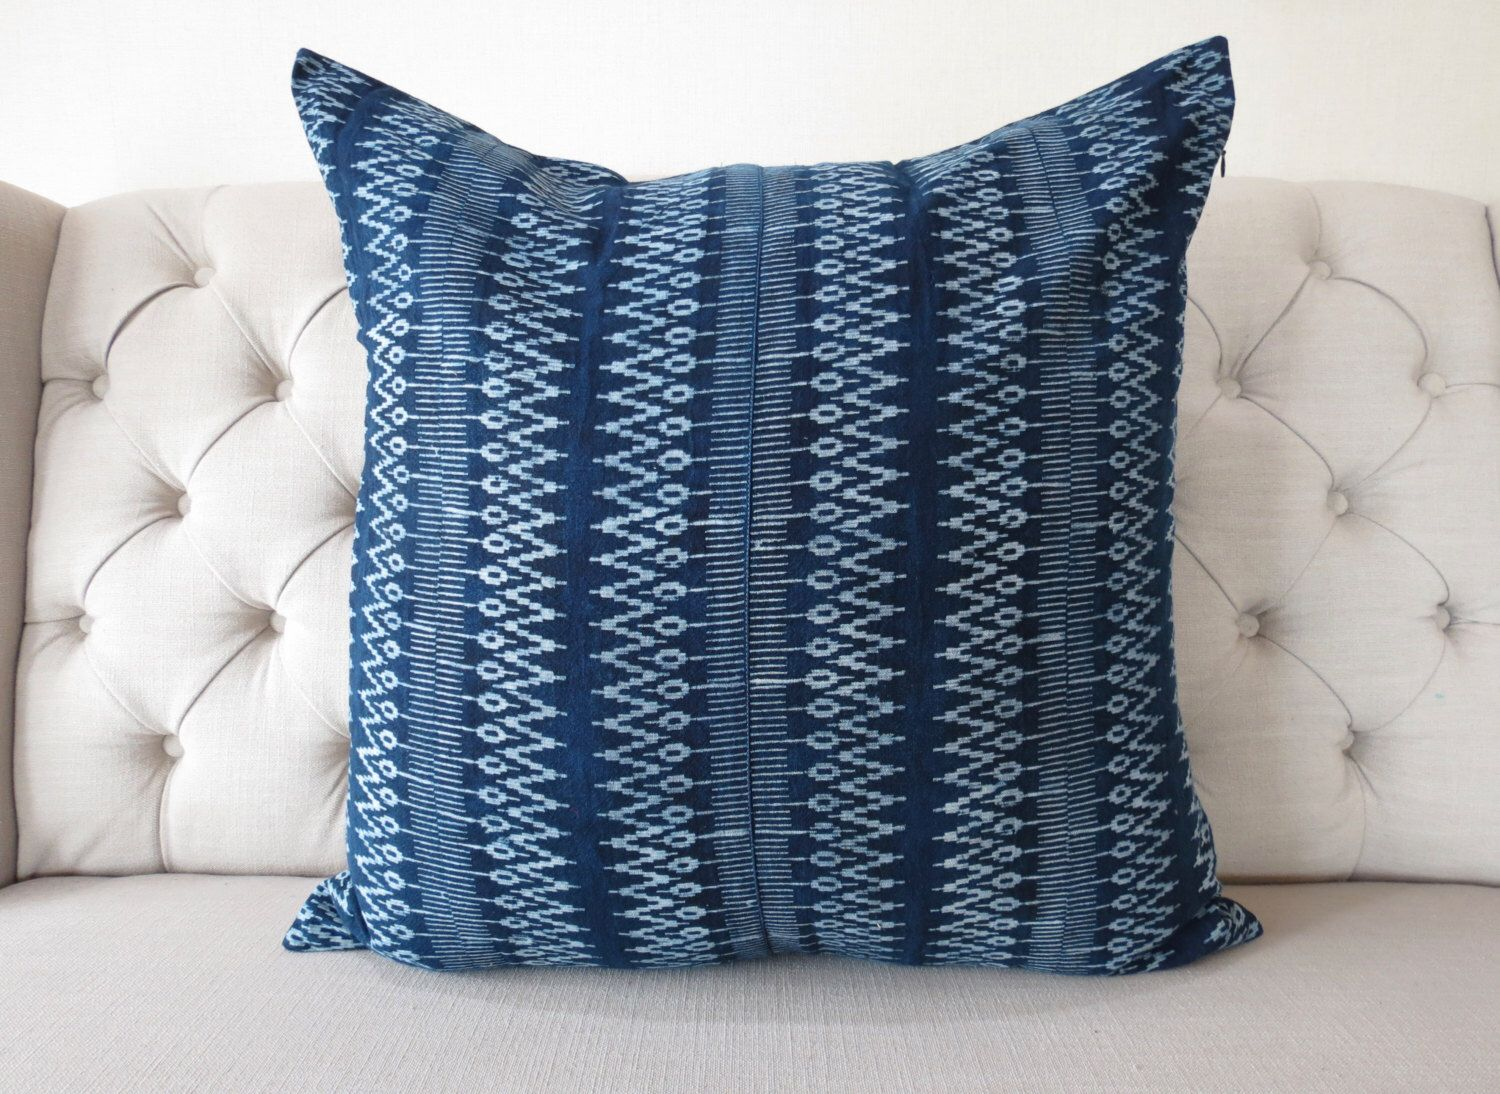 Indigo Batik 26x26, Pillow Cover- Handmade Batik Fabric,Decorative Cushion,Throw Pillow,Decorative Pillow by shopthailand on Etsy https://www.etsy.com/listing/461263518/indigo-batik-26x26-pillow-cover-handmade